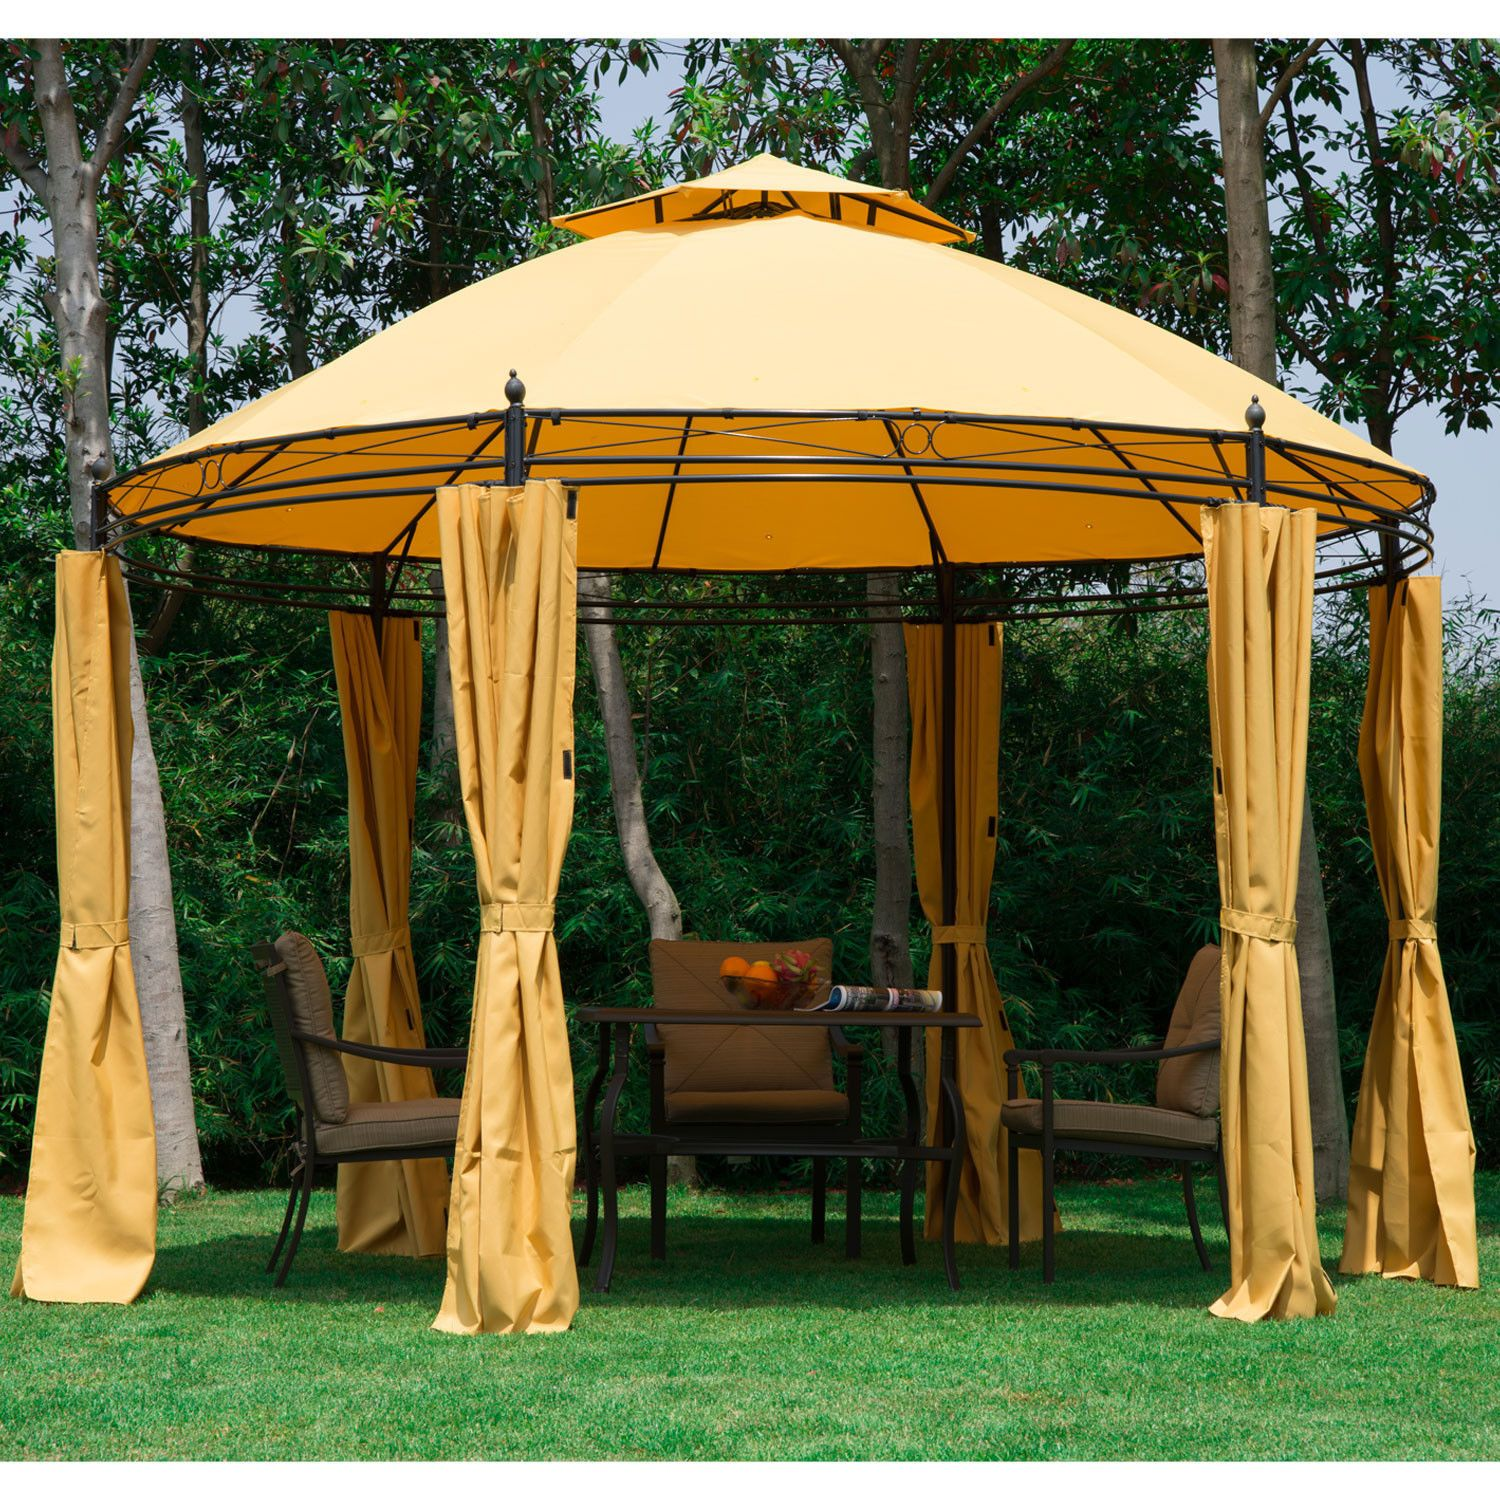 11 5FT Round Outdoor Patio Canopy Gazebo 2 Tier Roof Tent Shelter